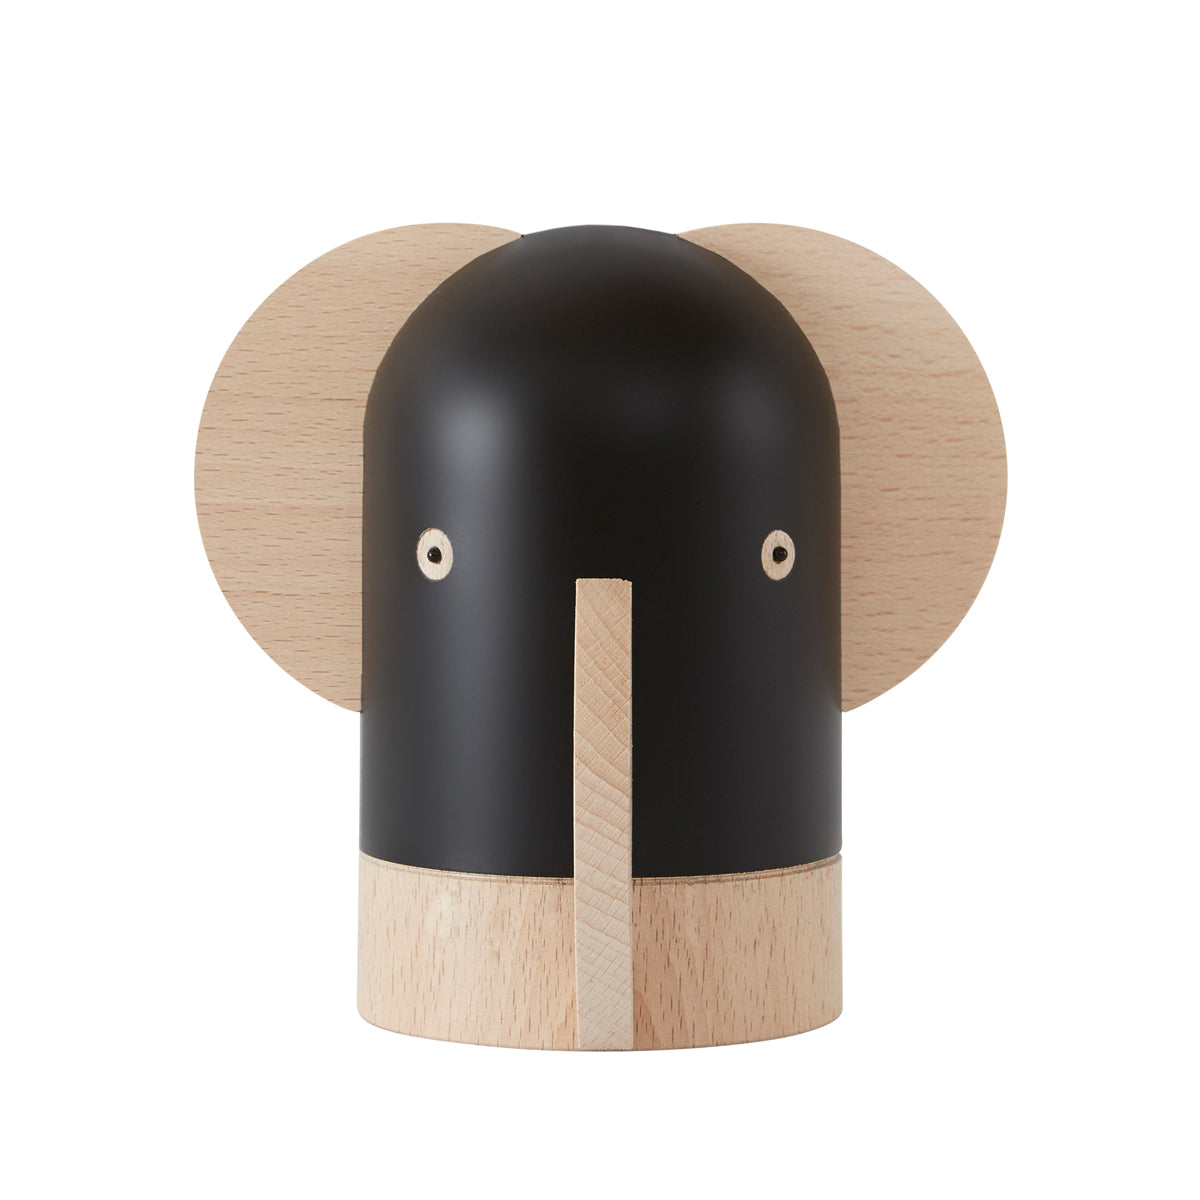 elephant baba money bbox from Oyoy living design in wood and black